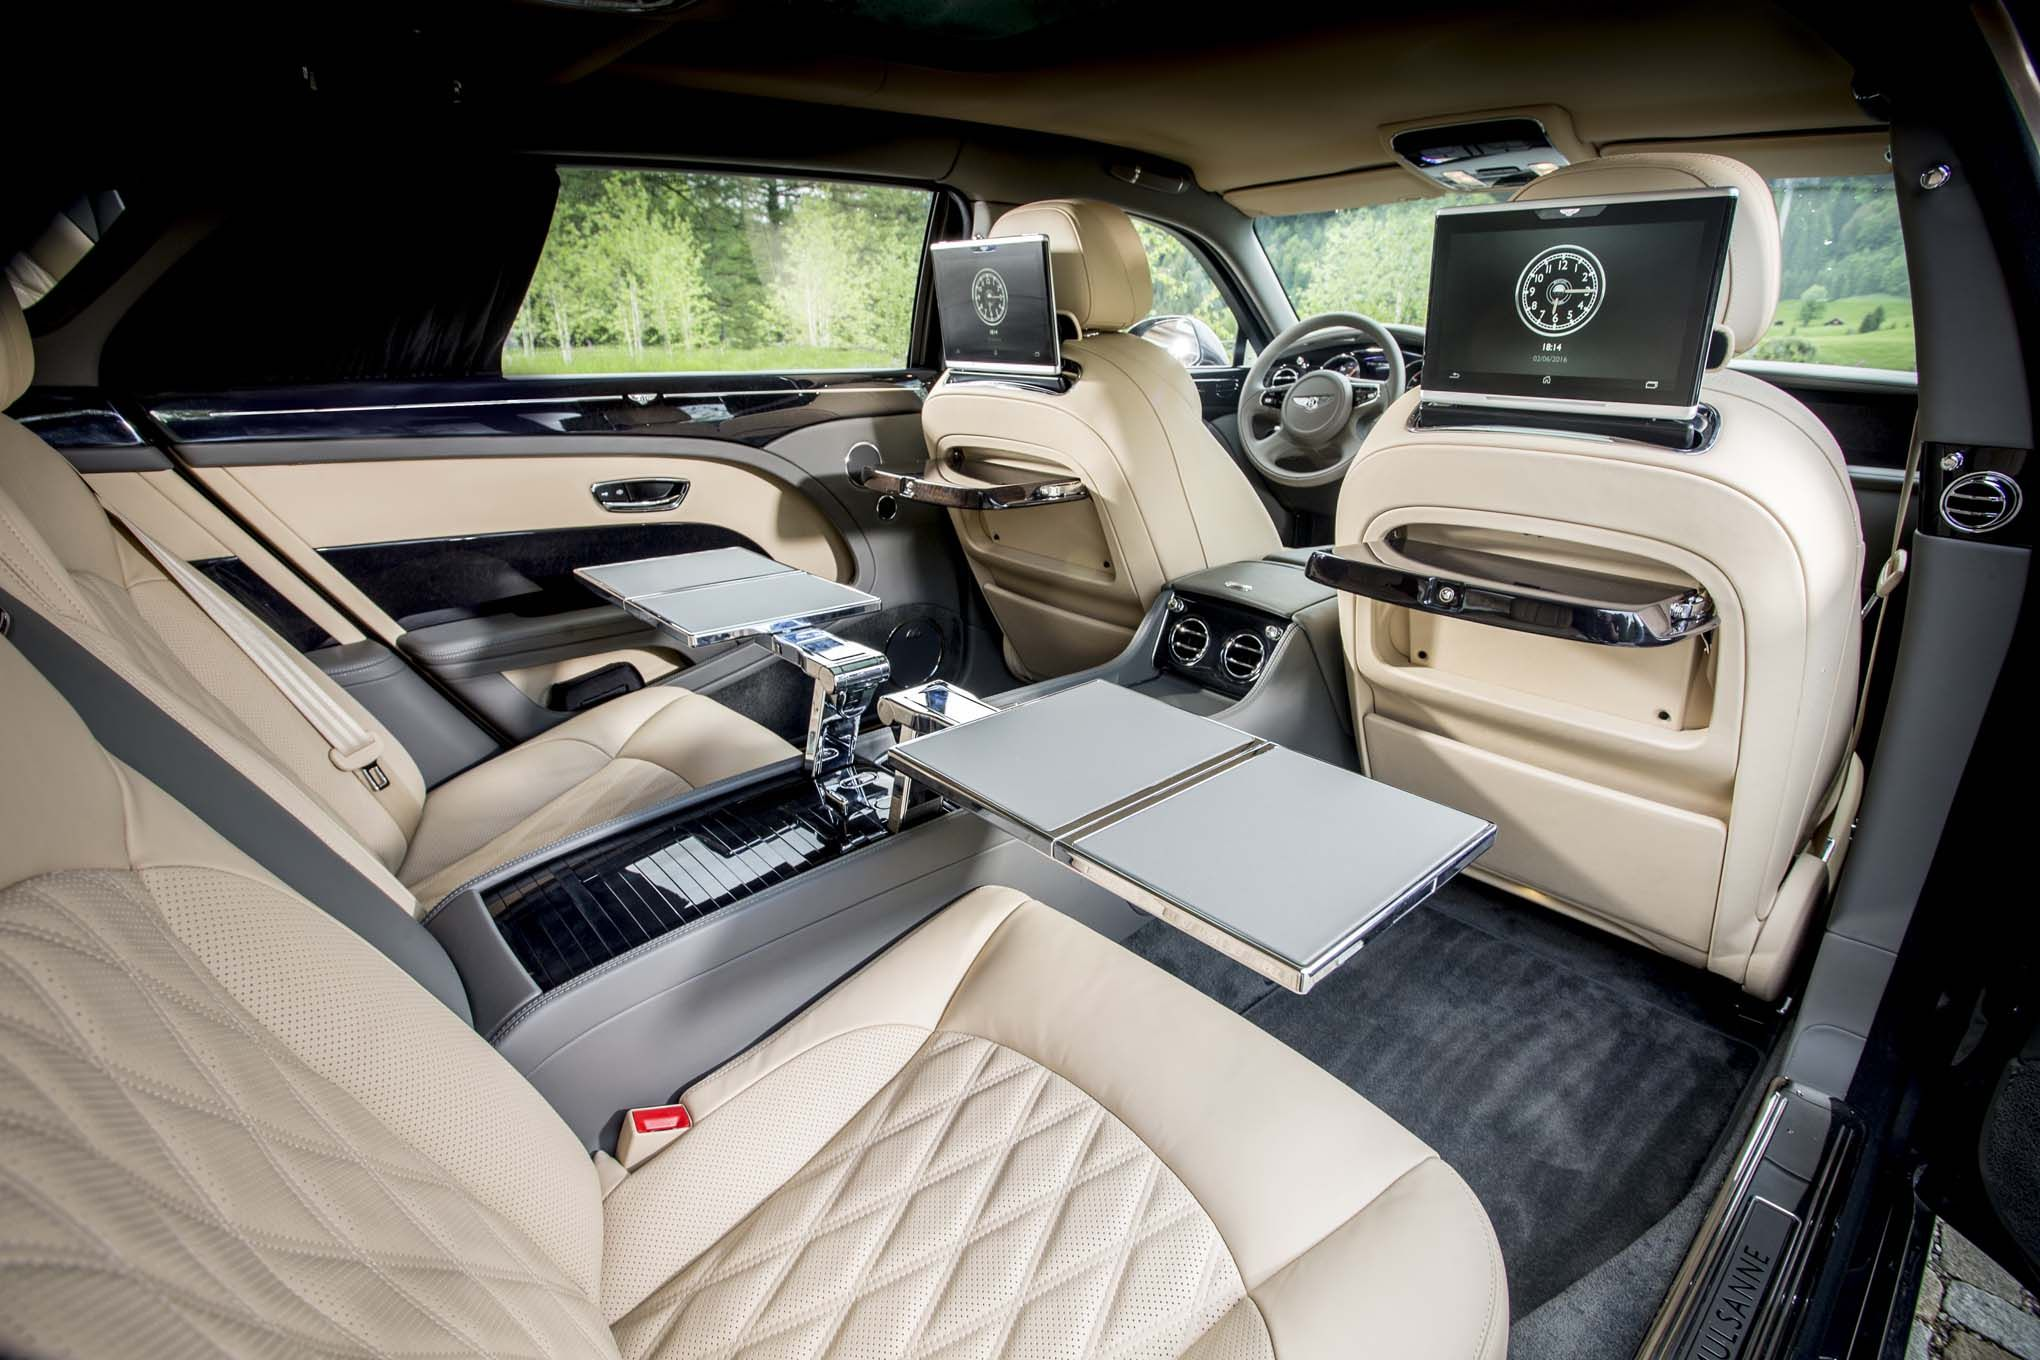 2017 bentley mulsanne ewb interior view 02g 20401360 2017 bentley mulsanne ewb interior view 02g vanachro Images